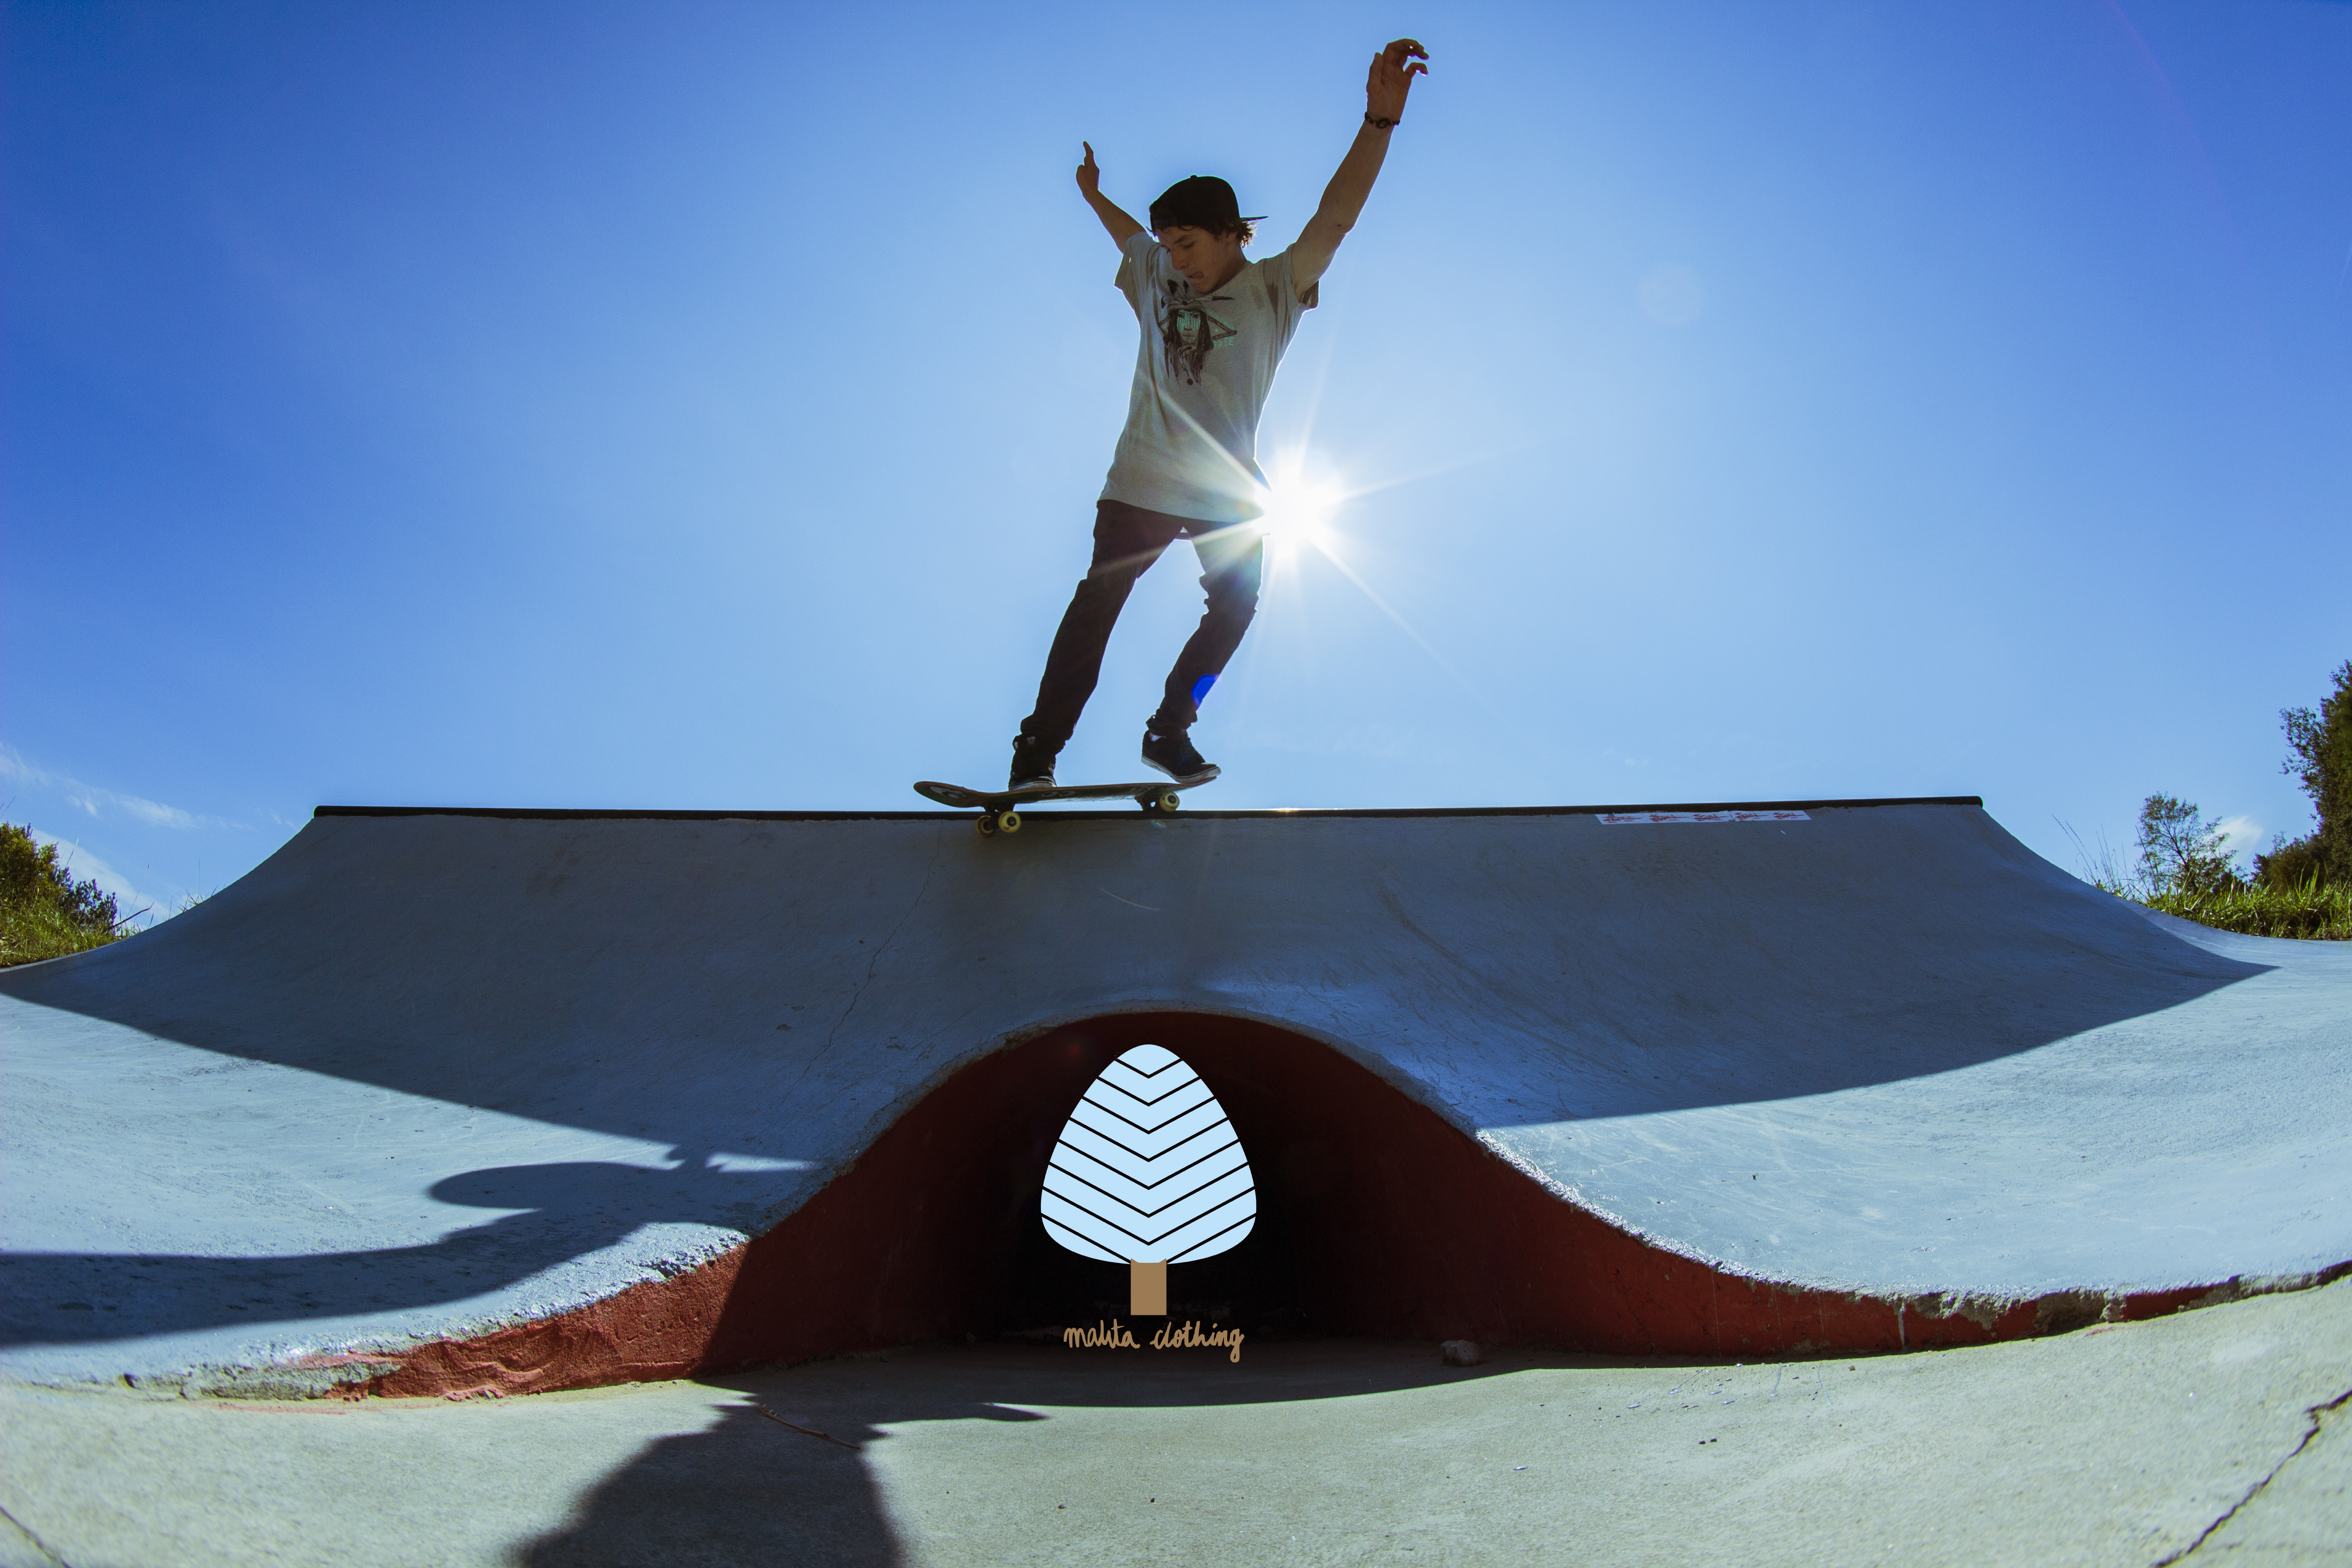 Patryk bs smith